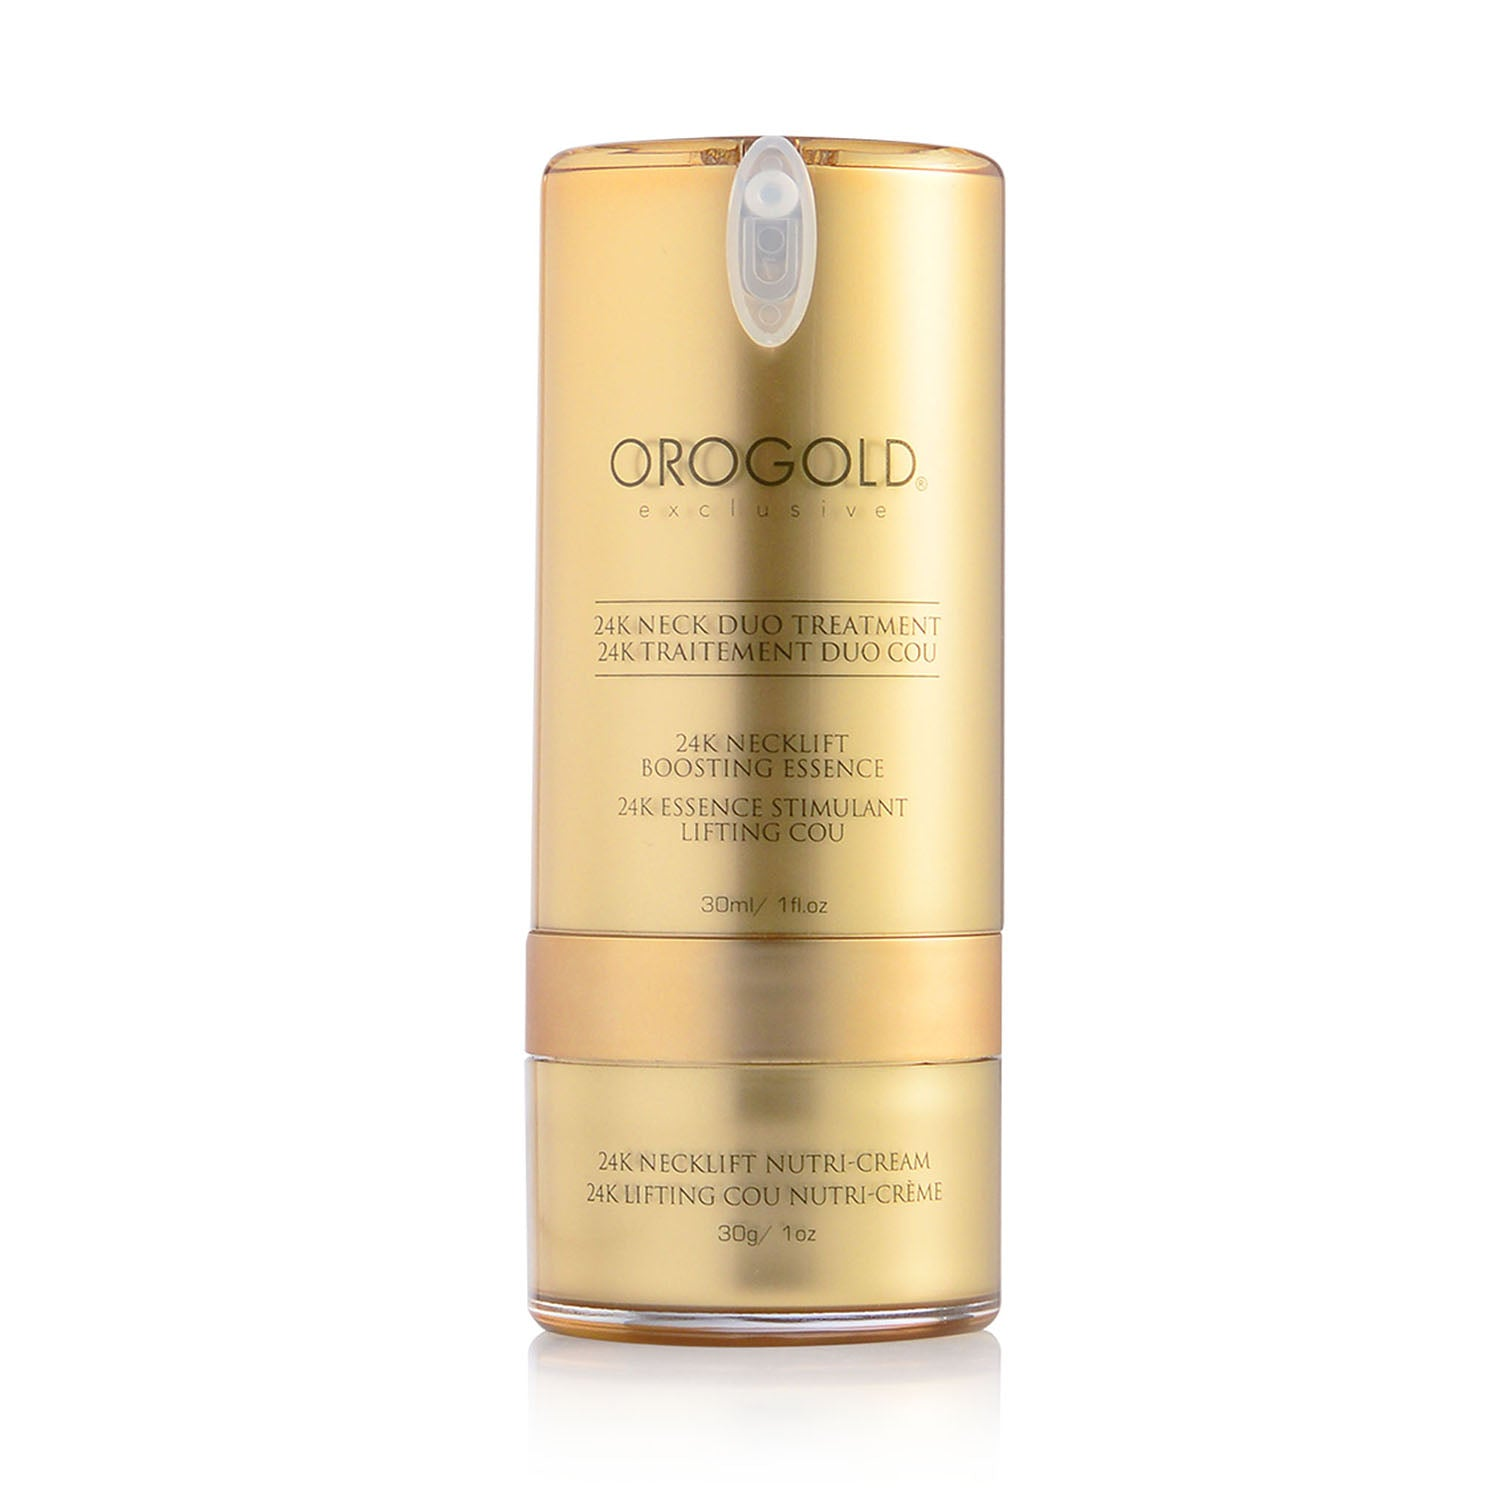 OROGOLD Cosmetics Neck Firming Treatment